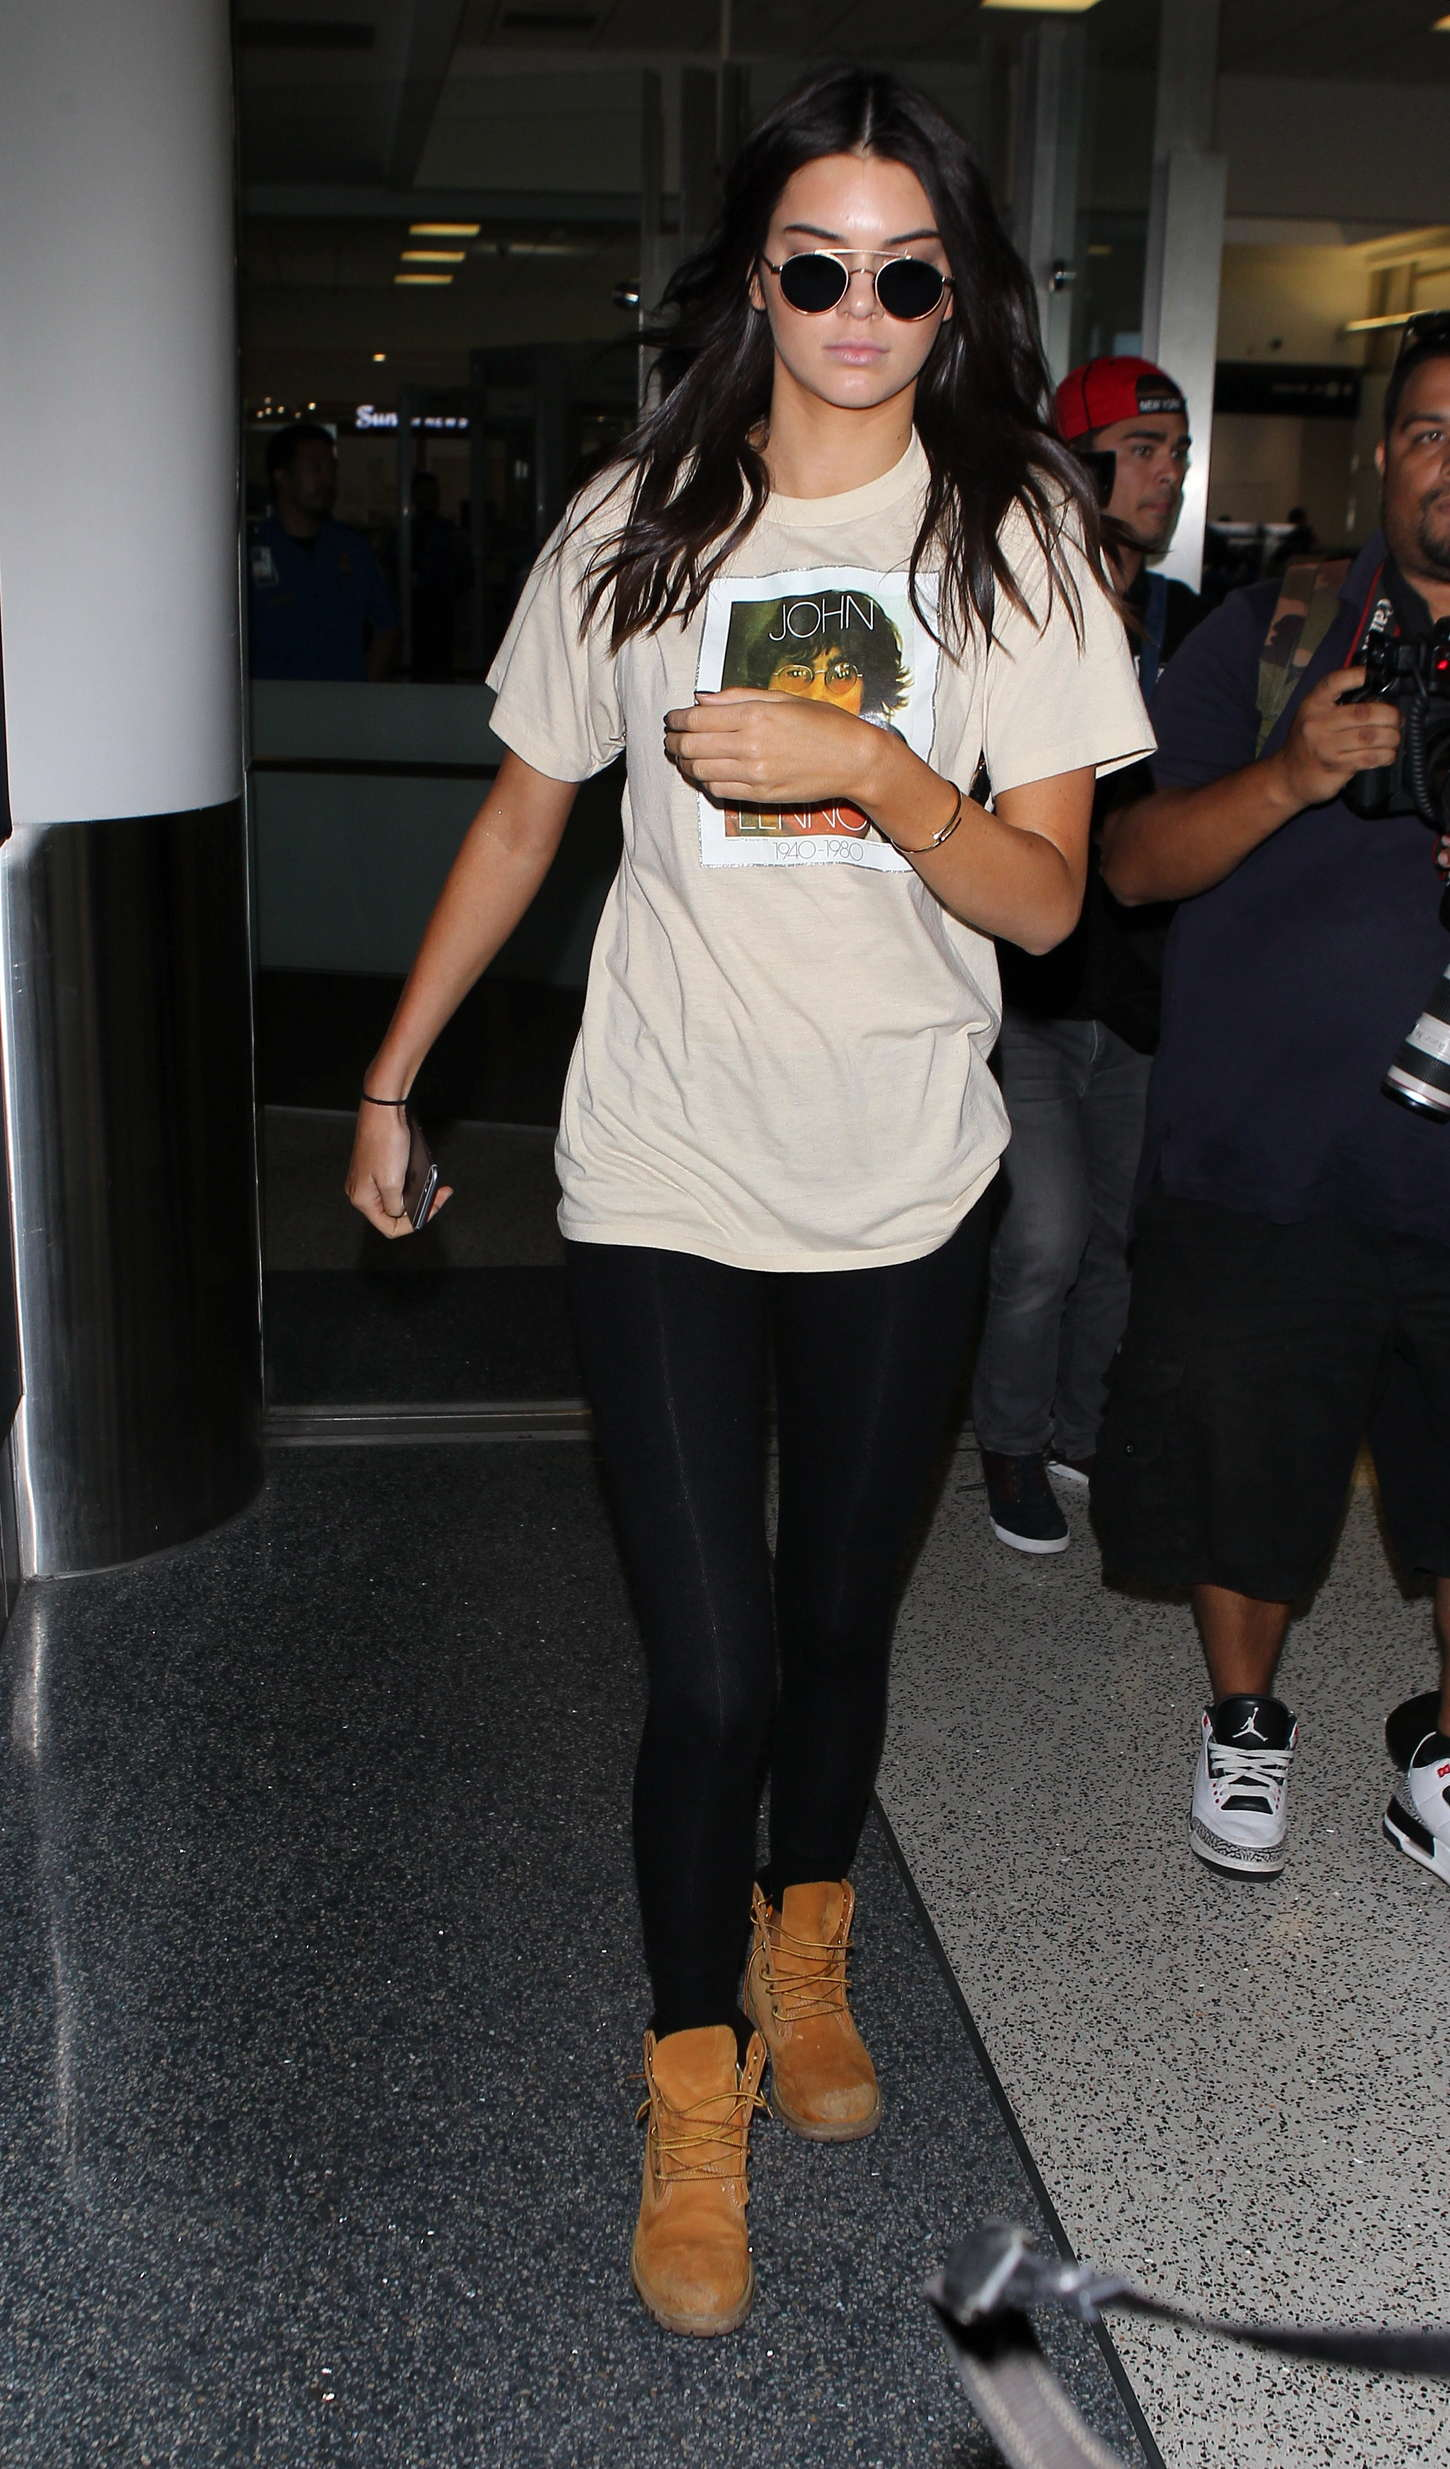 Kendall Jenner 2015 : Kendall Jenner in Tights at LAX -08